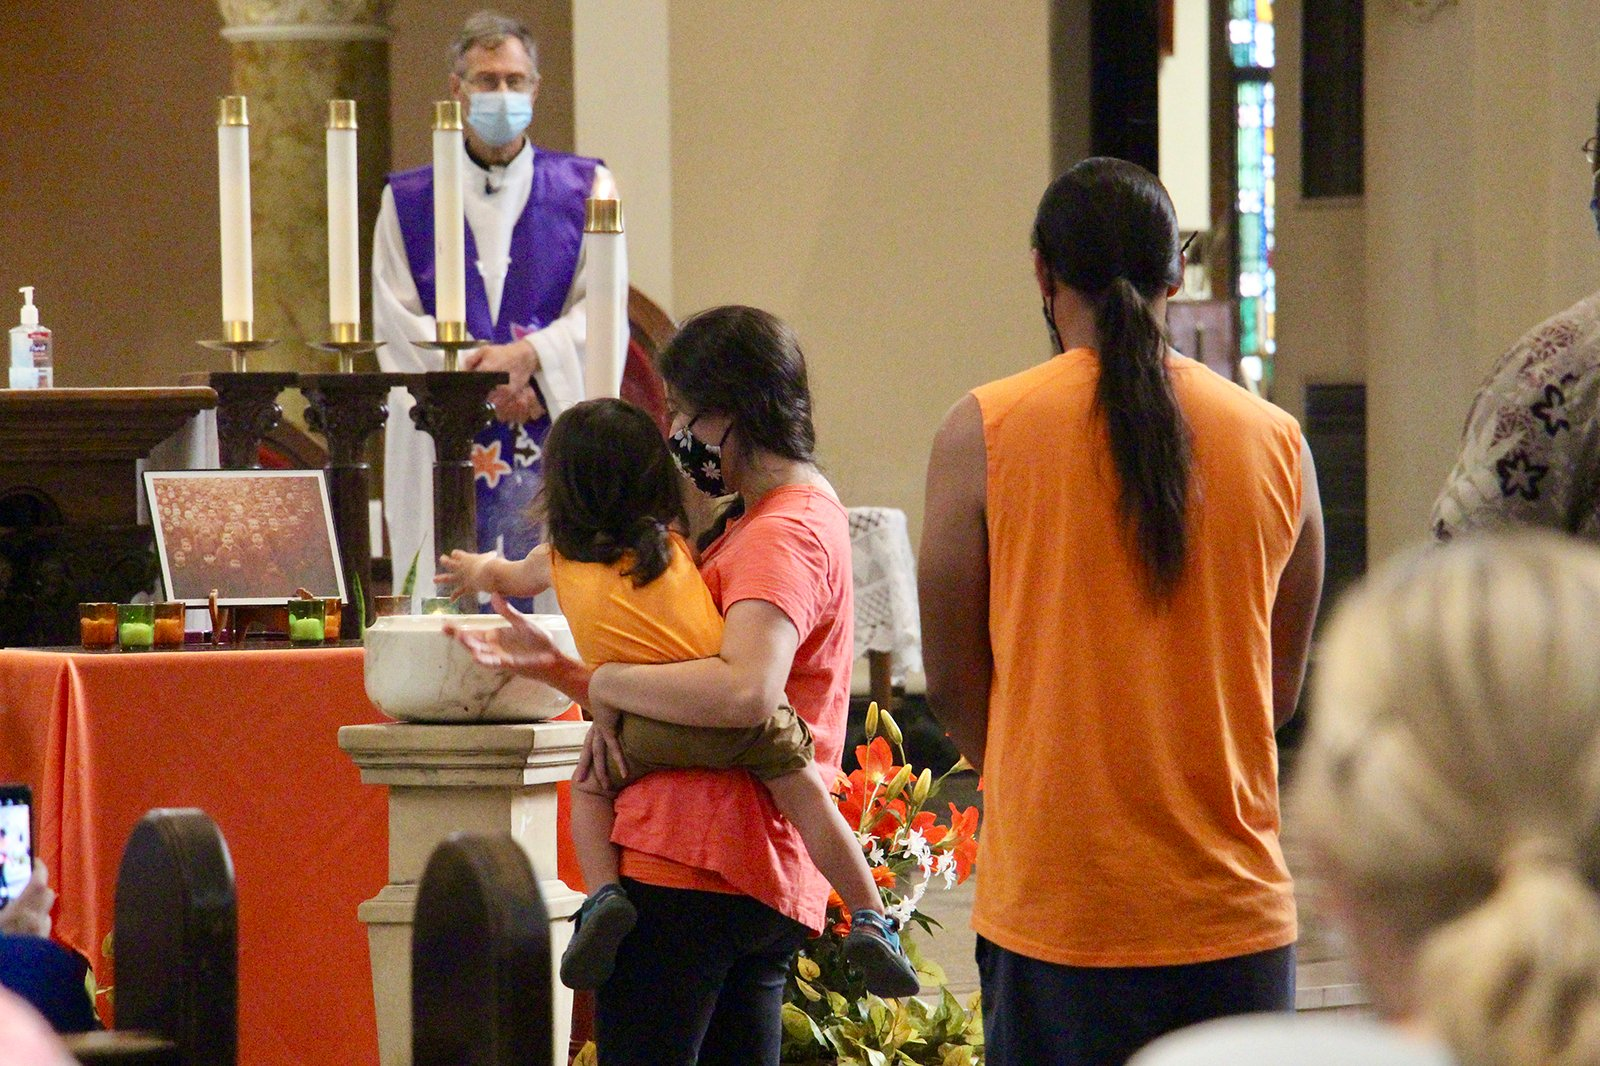 Attendees participate in a tobacco burning ceremony during the Prayer Service for Truth and Reconciliation, Sunday, Aug. 29, 2021, at St. Benedict Parish in Chicago. RNS photo by Emily McFarlan Miller